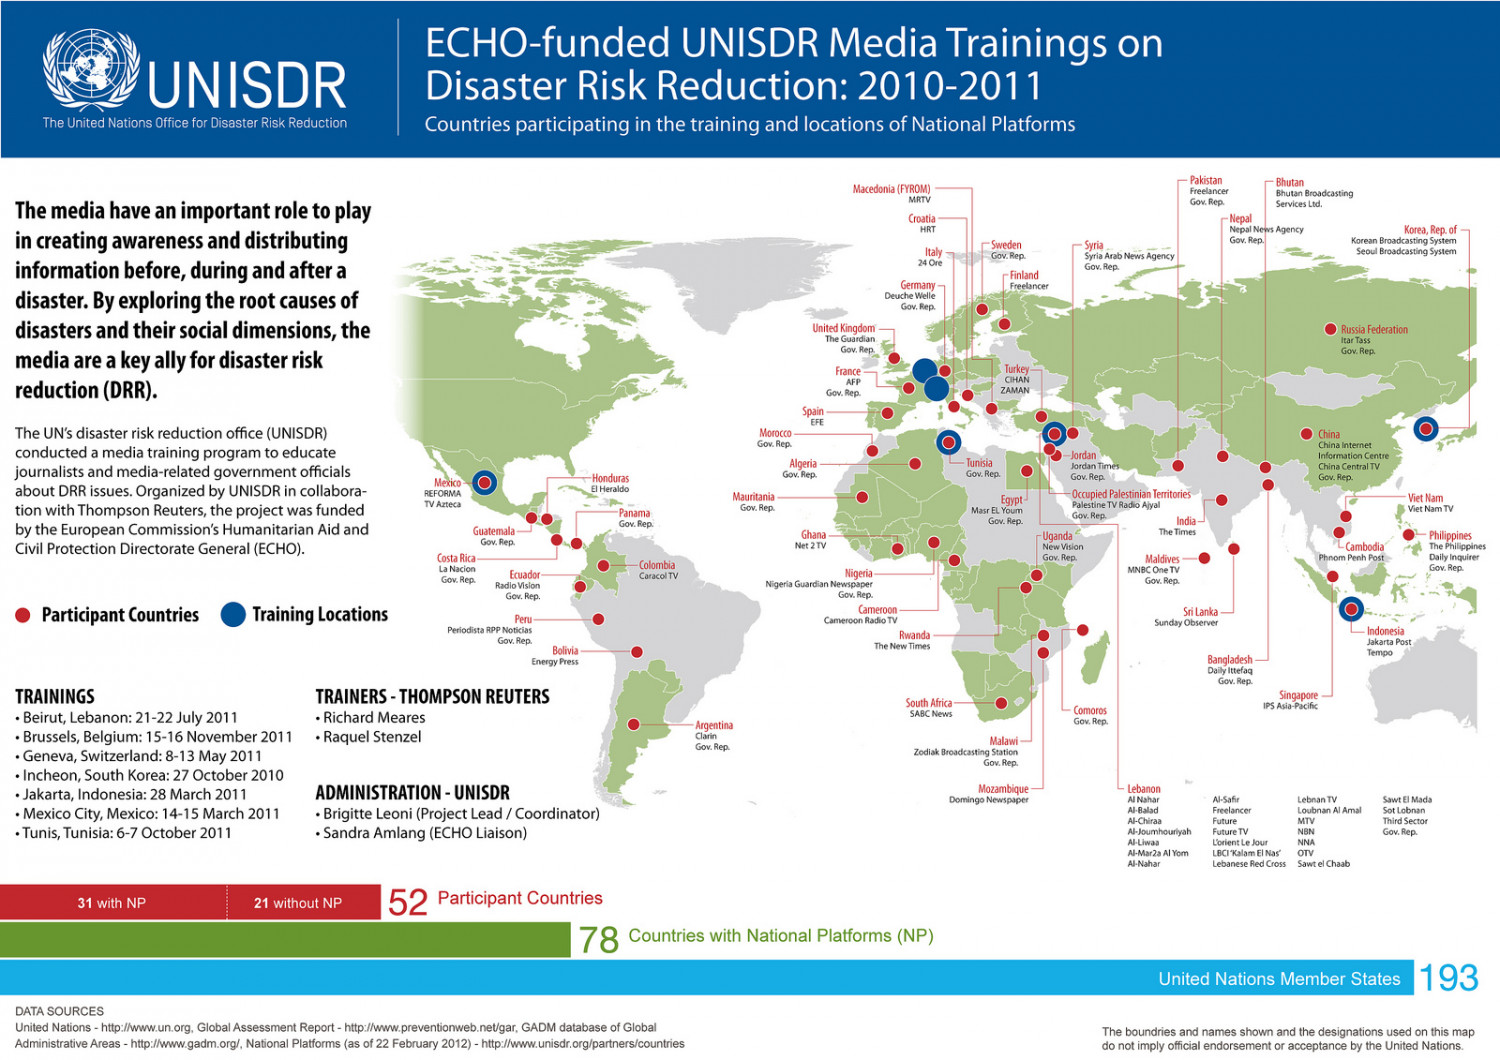 ECHO-funded UNISDR Media Trainings on Disaster Risk Reduction: 2010-2011 Infographic